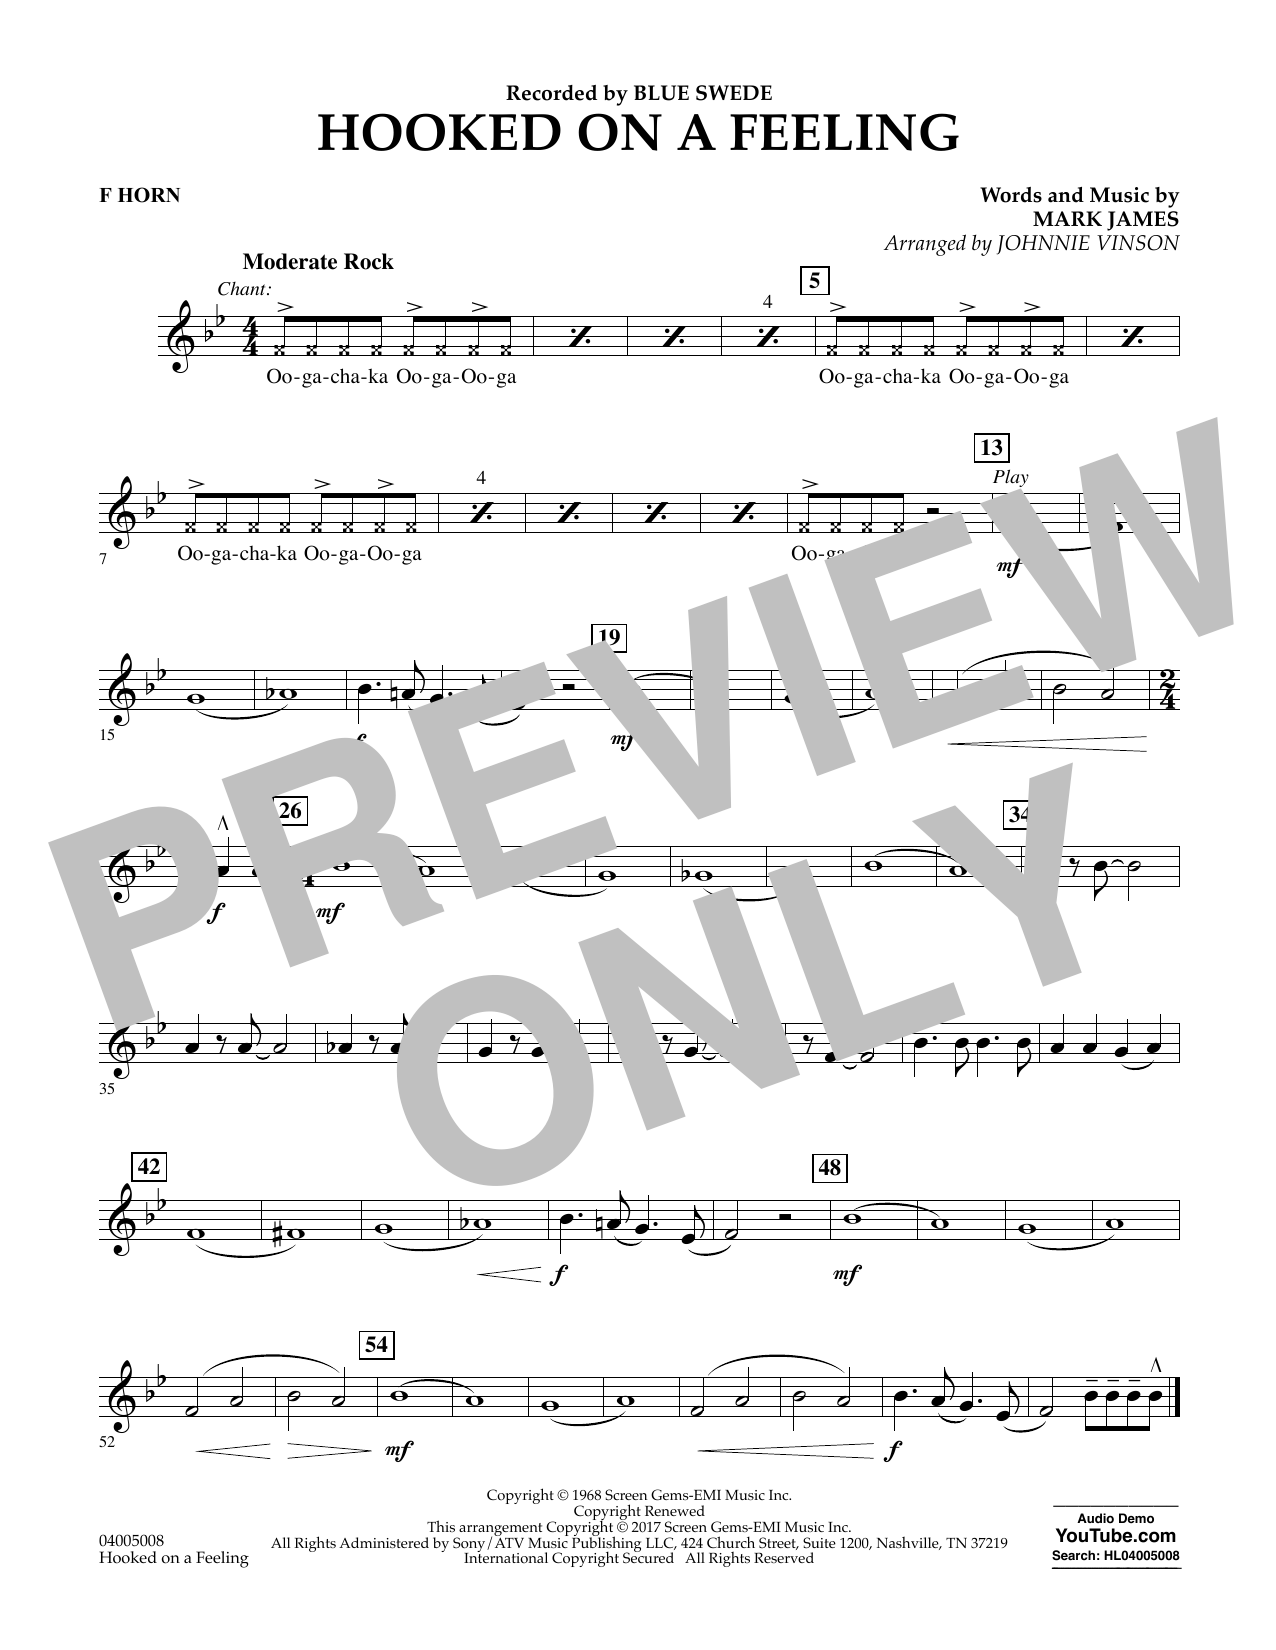 Hooked on a Feeling - F Horn Sheet Music